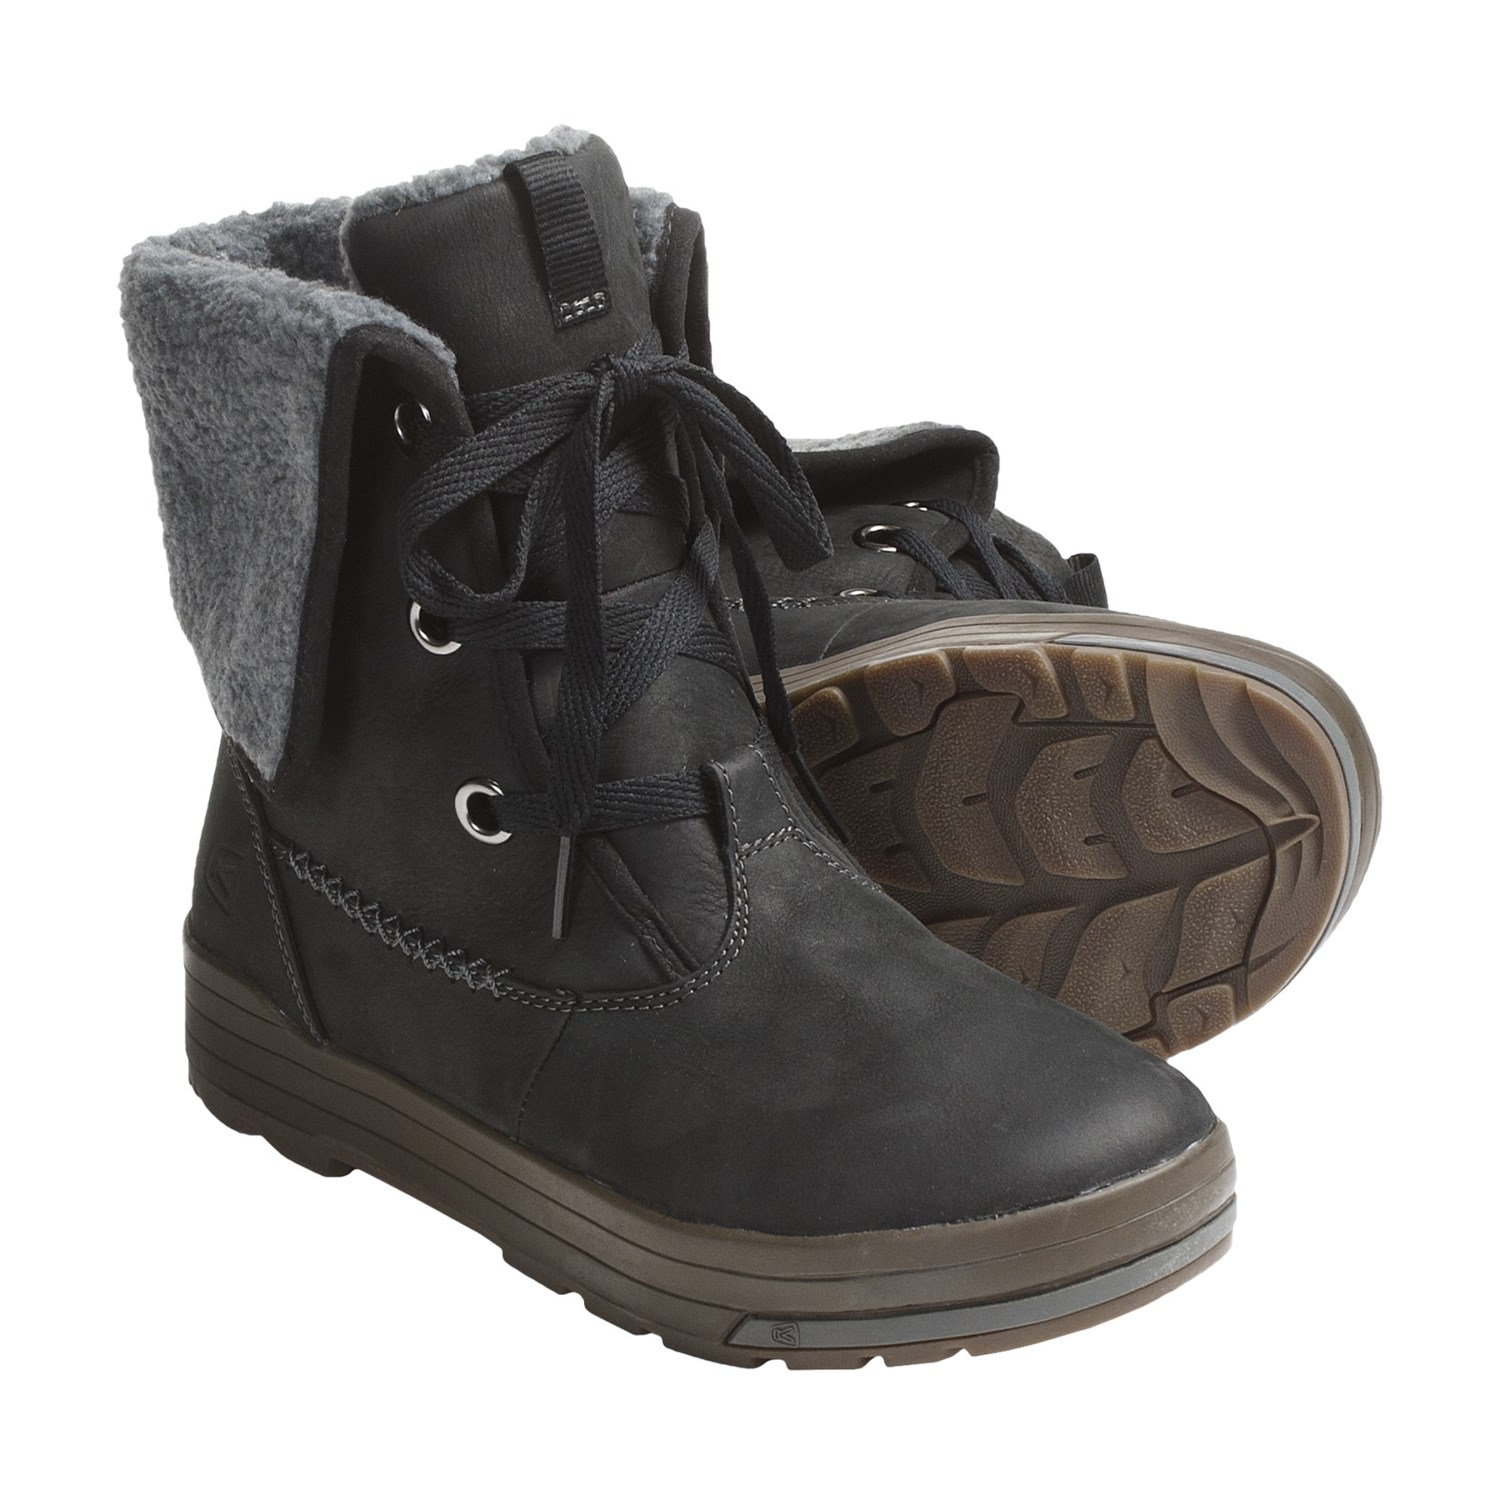 Original But For That Other 10%, We Women Need A Strong, Sturdy Hiking Boot That Provides Both Protection And Flexibility It Needs To Be Lightweight And Soft, But Also Able To Withstand Boulders, Creek Crossings, And Dusty Trails The Keen Terradora